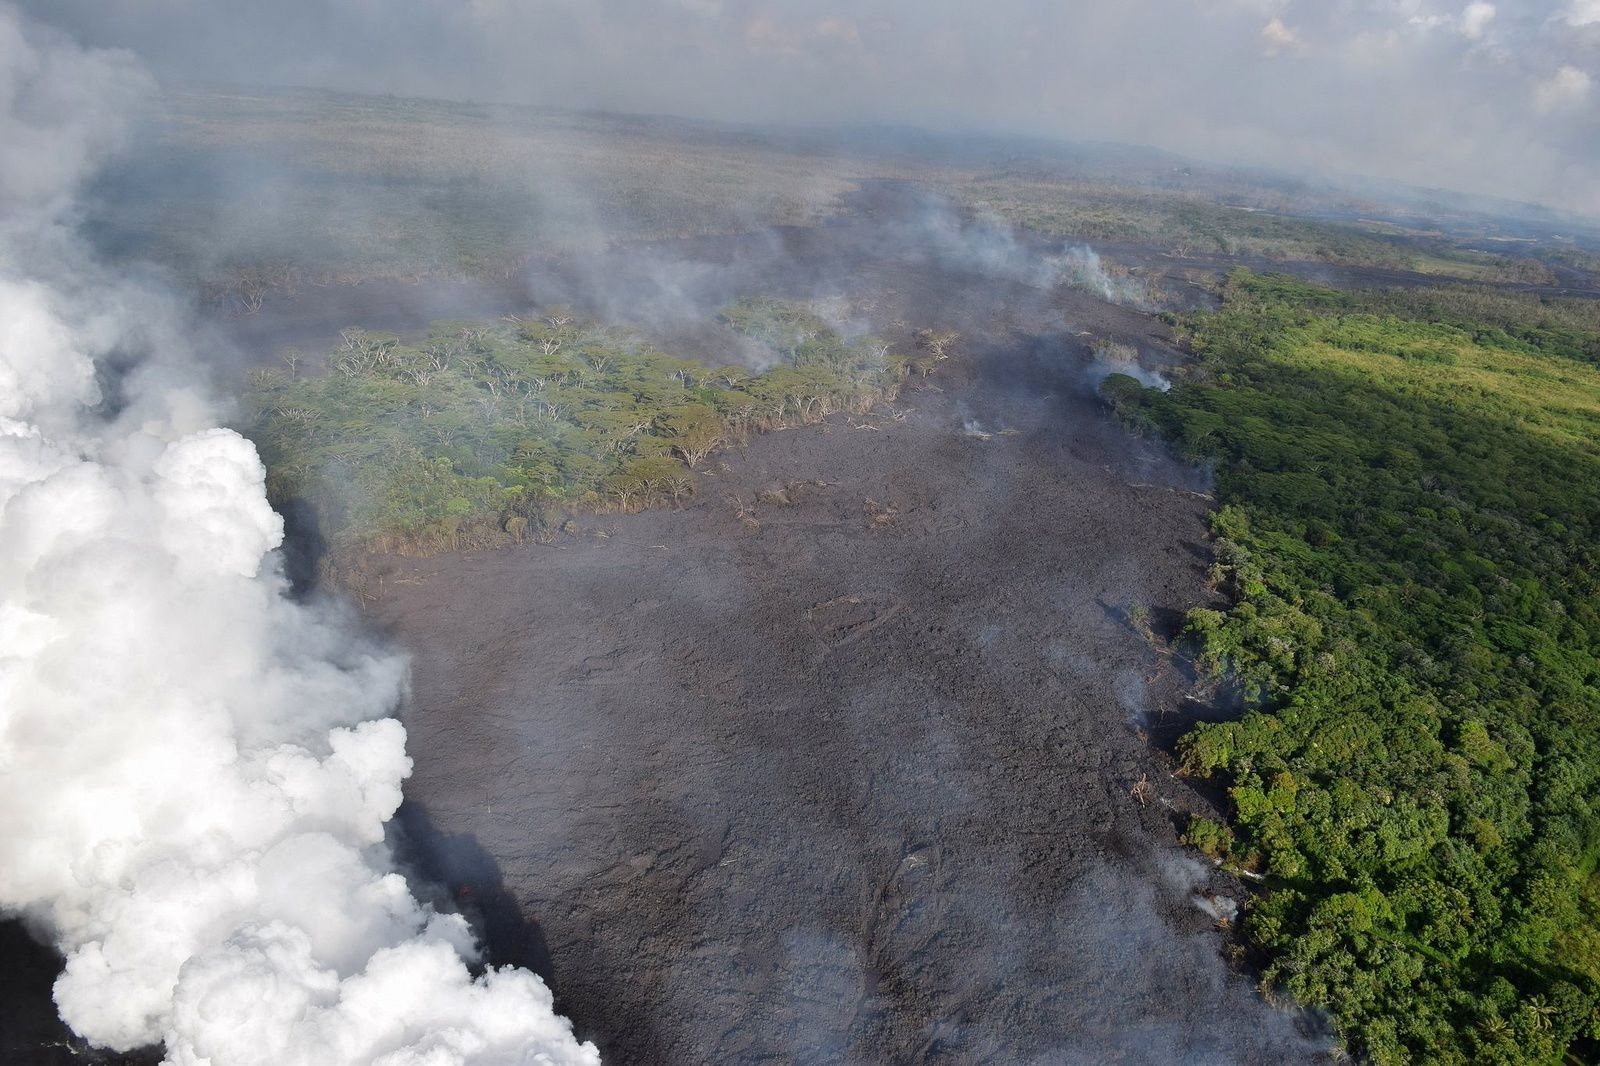 Kilauea East Rift Zone - view from sea to inland and lava flow around a kipuka - HVO-USGS photo